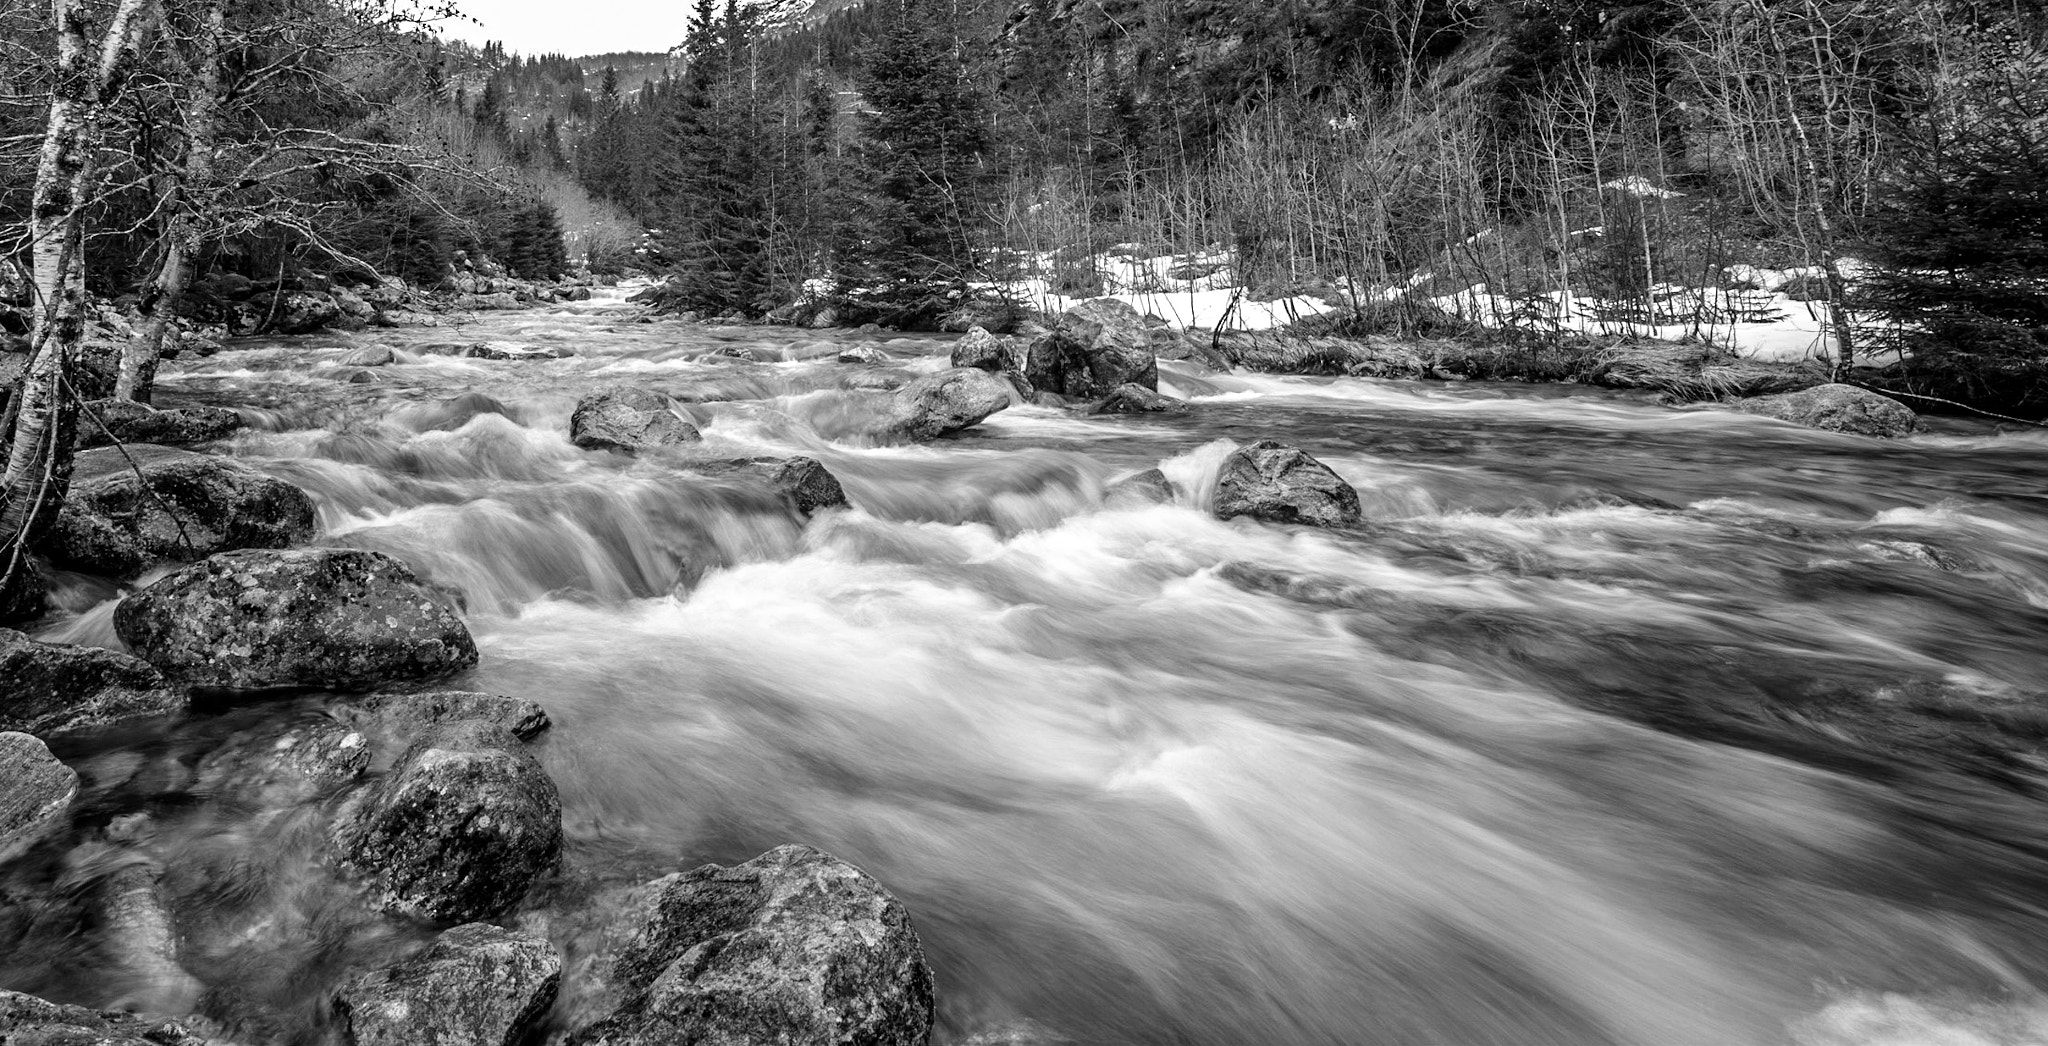 It is spring in the air, and the snow melts, the r ... - It is spring in the air, and the snow melts, the rivers floods beautiful, is just amazing in black and white! Lense Samynag 14mm f 5.6